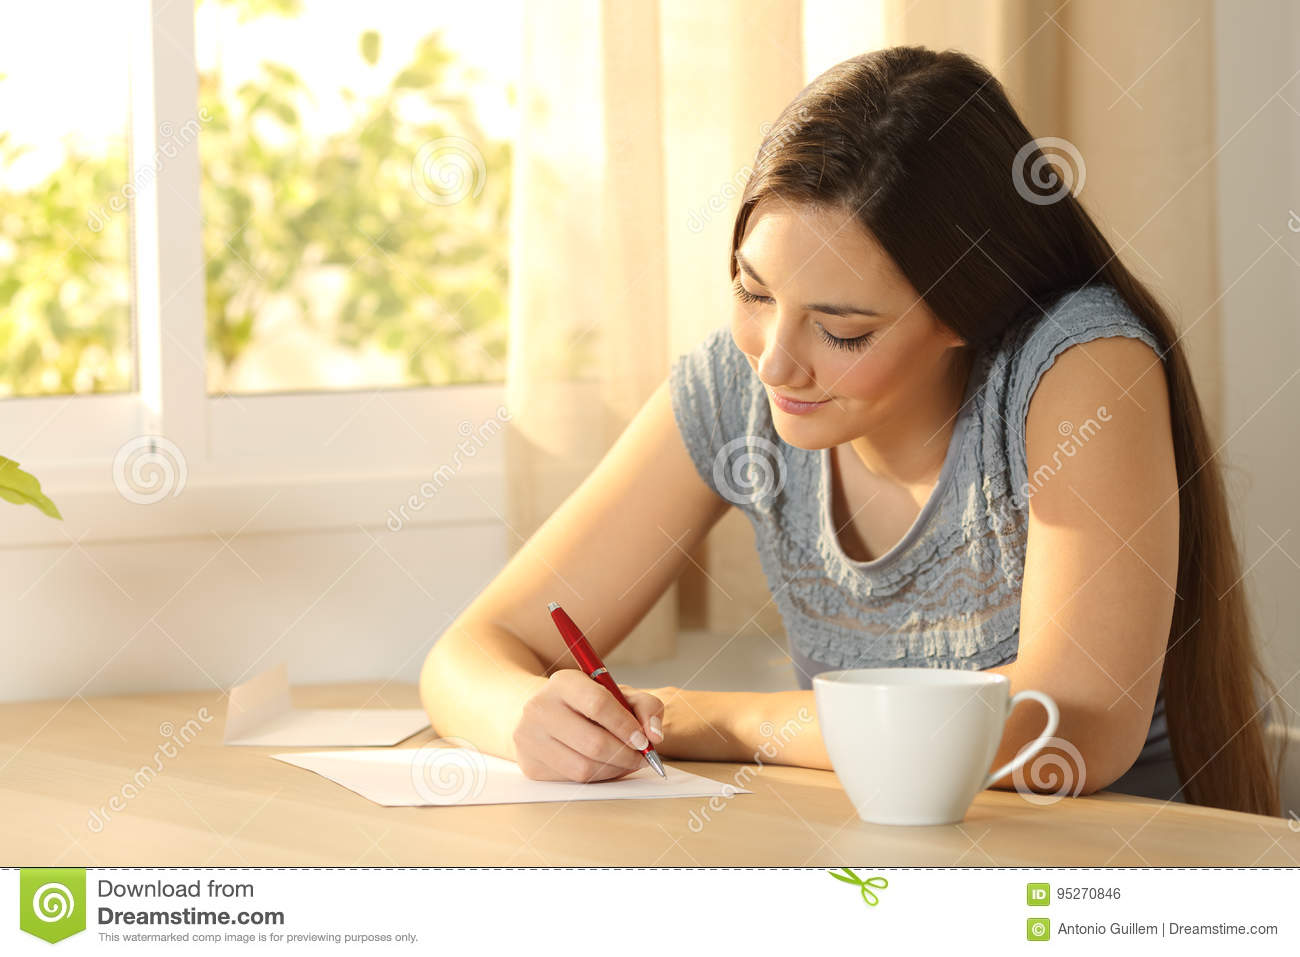 how to write a letter to someone you like